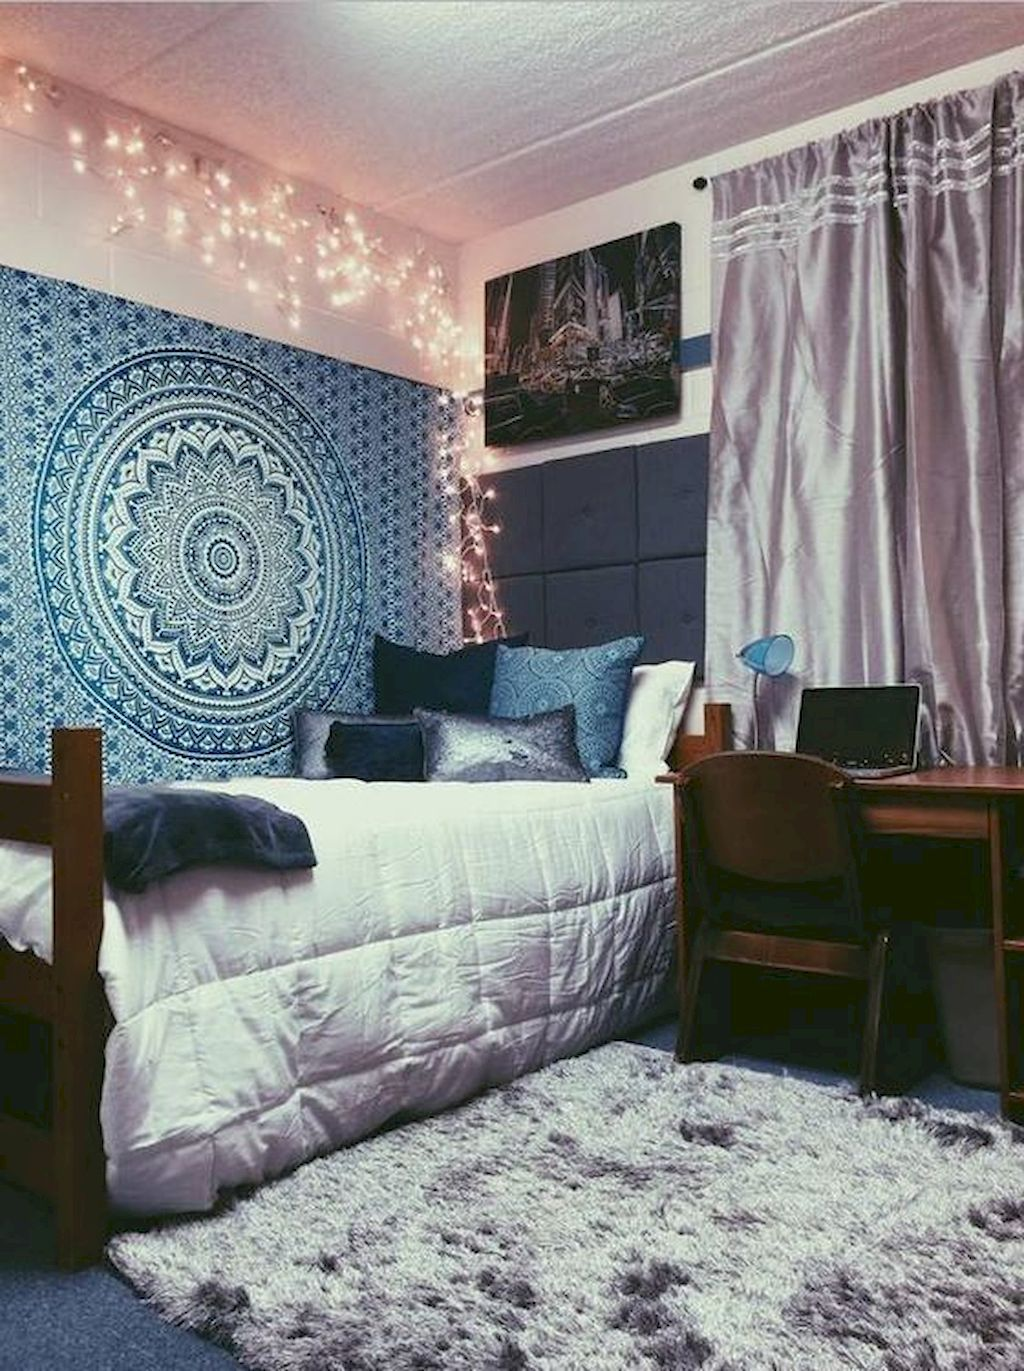 Top 27 Diy Ideas How To Make A Perfect Living Space For Pets: 60 Stunning And Cute Dorm Room Decorating Ideas